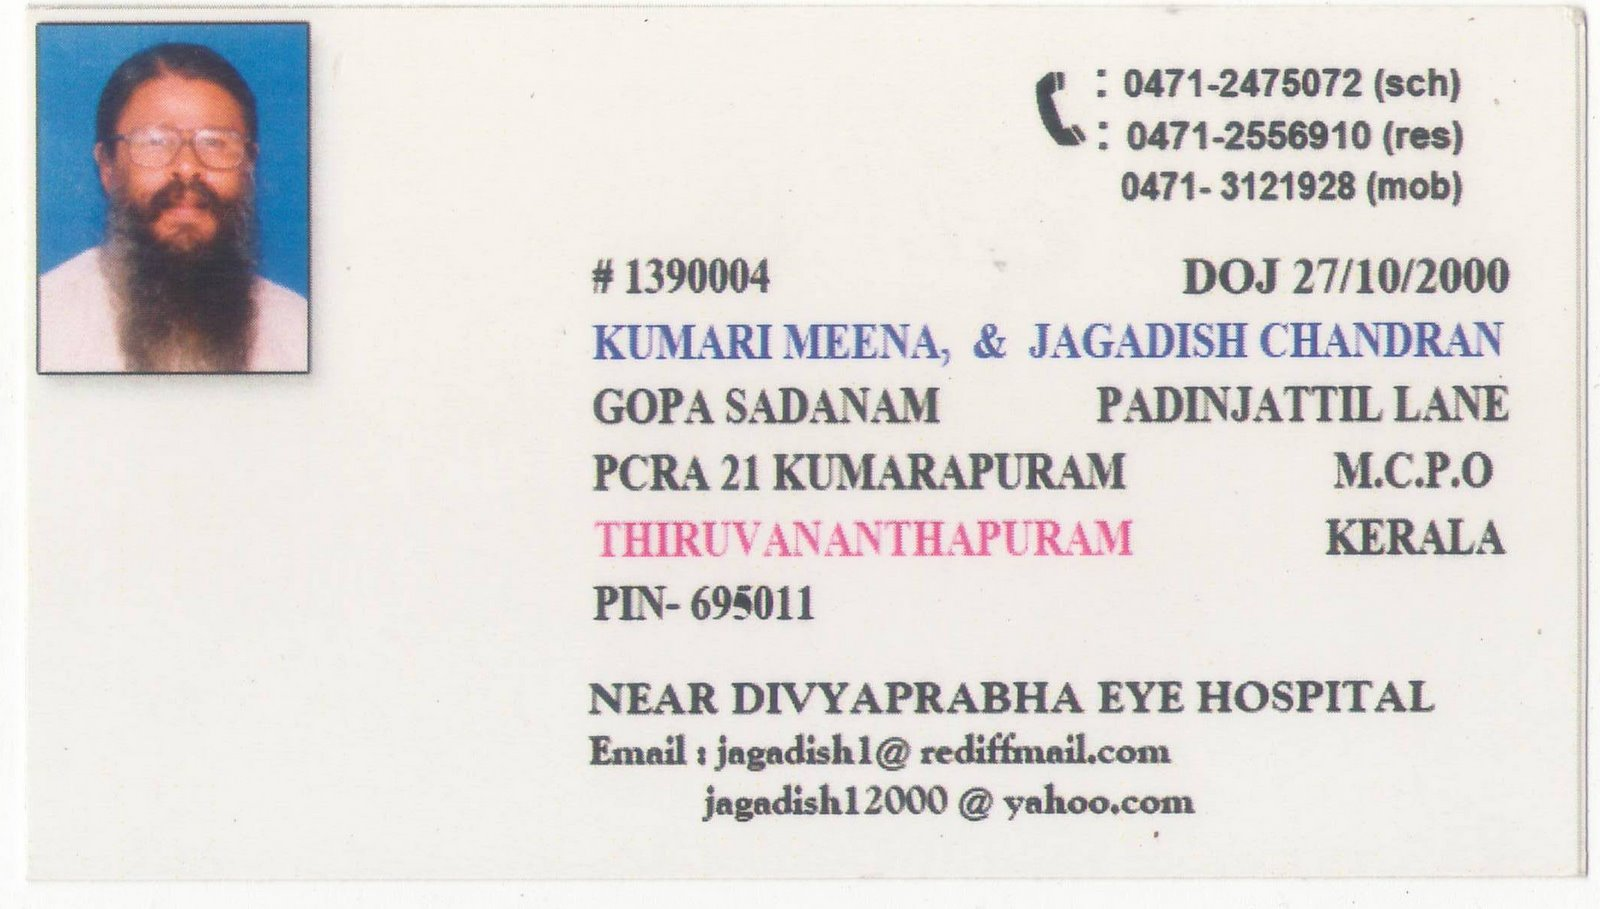 lifeofjagadishchandran: Visiting Card for AMWAY with ADA No